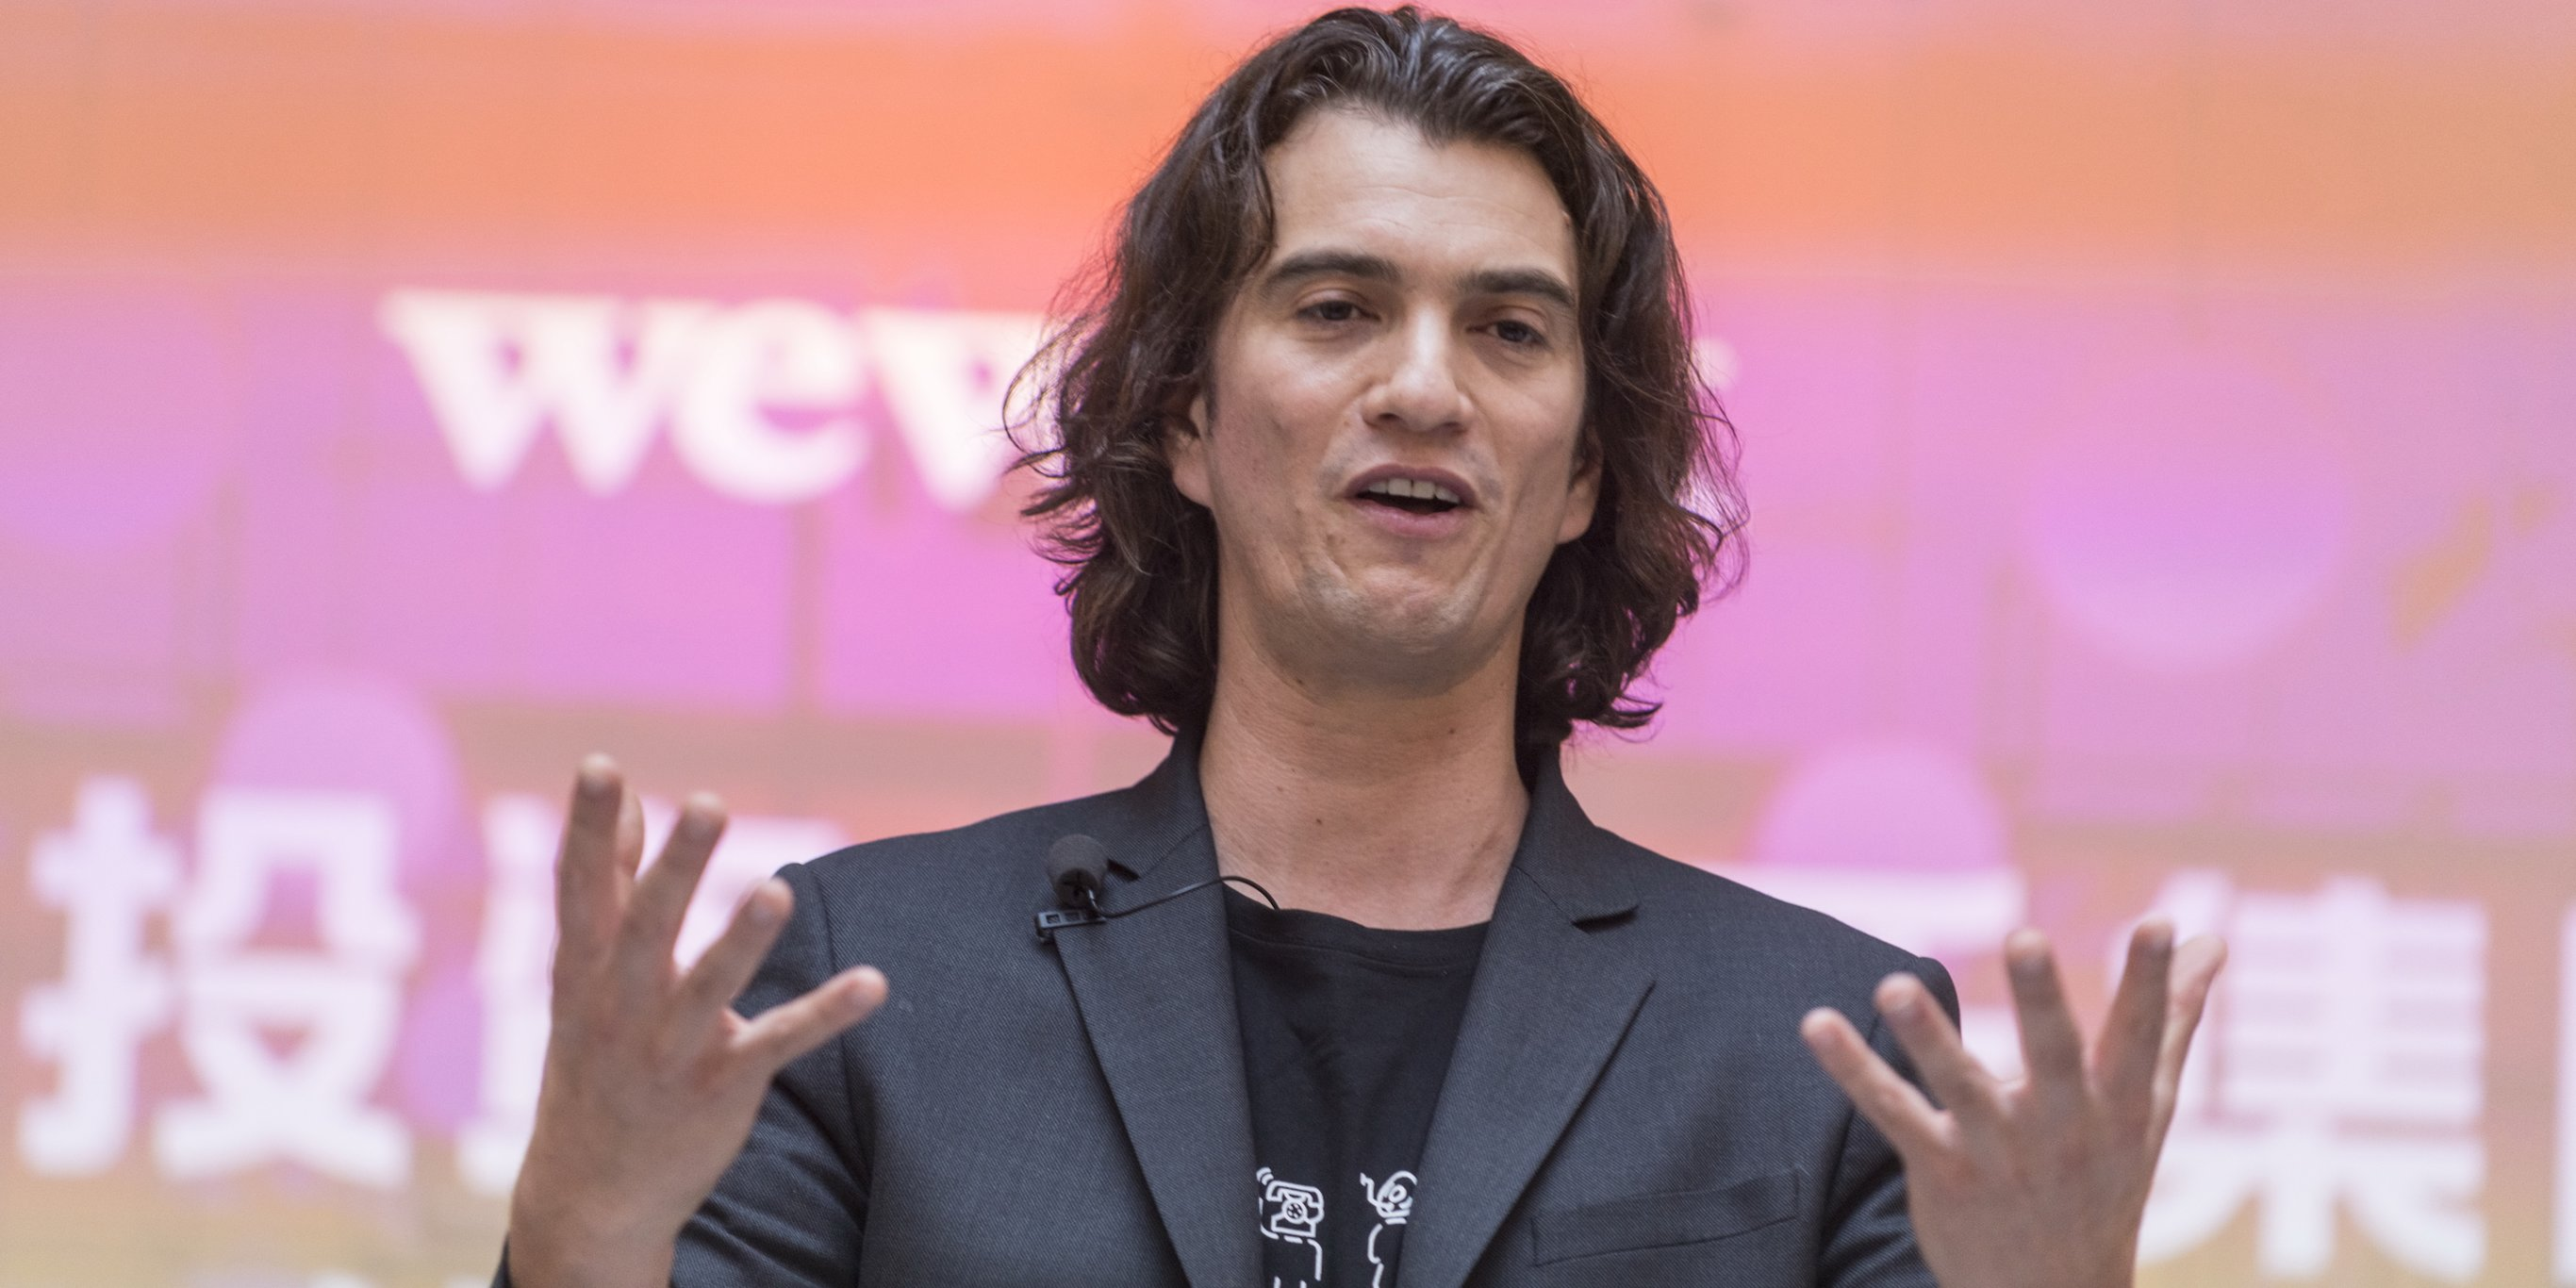 This VC turned down an M&A offer from WeWork, and it shows how Wall Street may have wildly overvalued the coworking giant